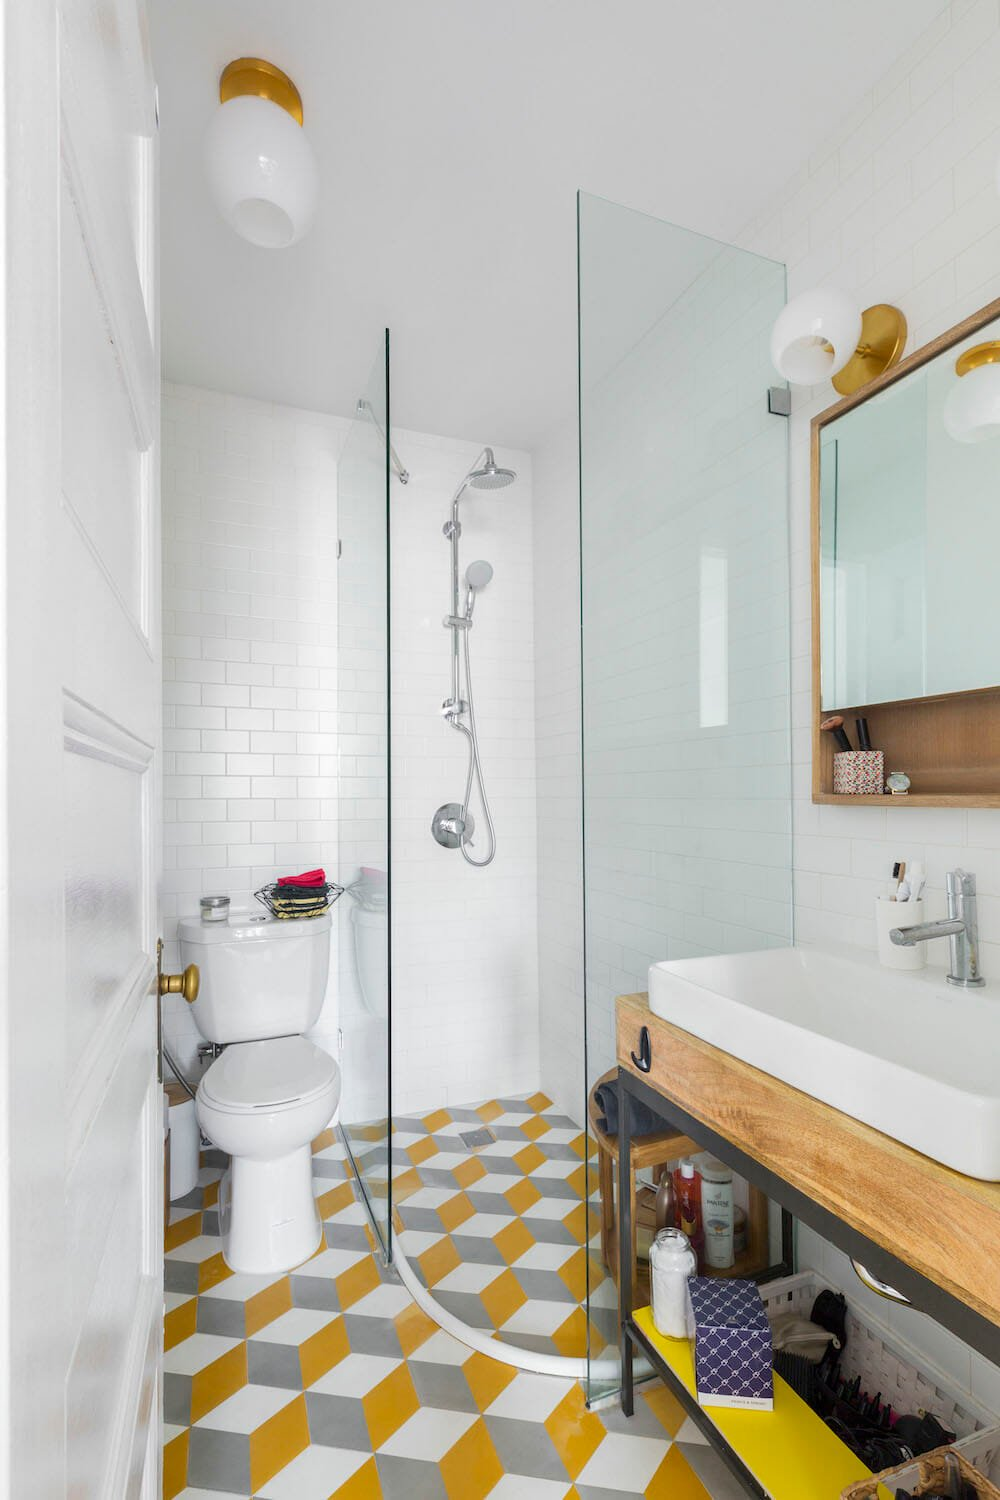 After bathtub to shower conversion, this homeowner had room for an extra-large sink